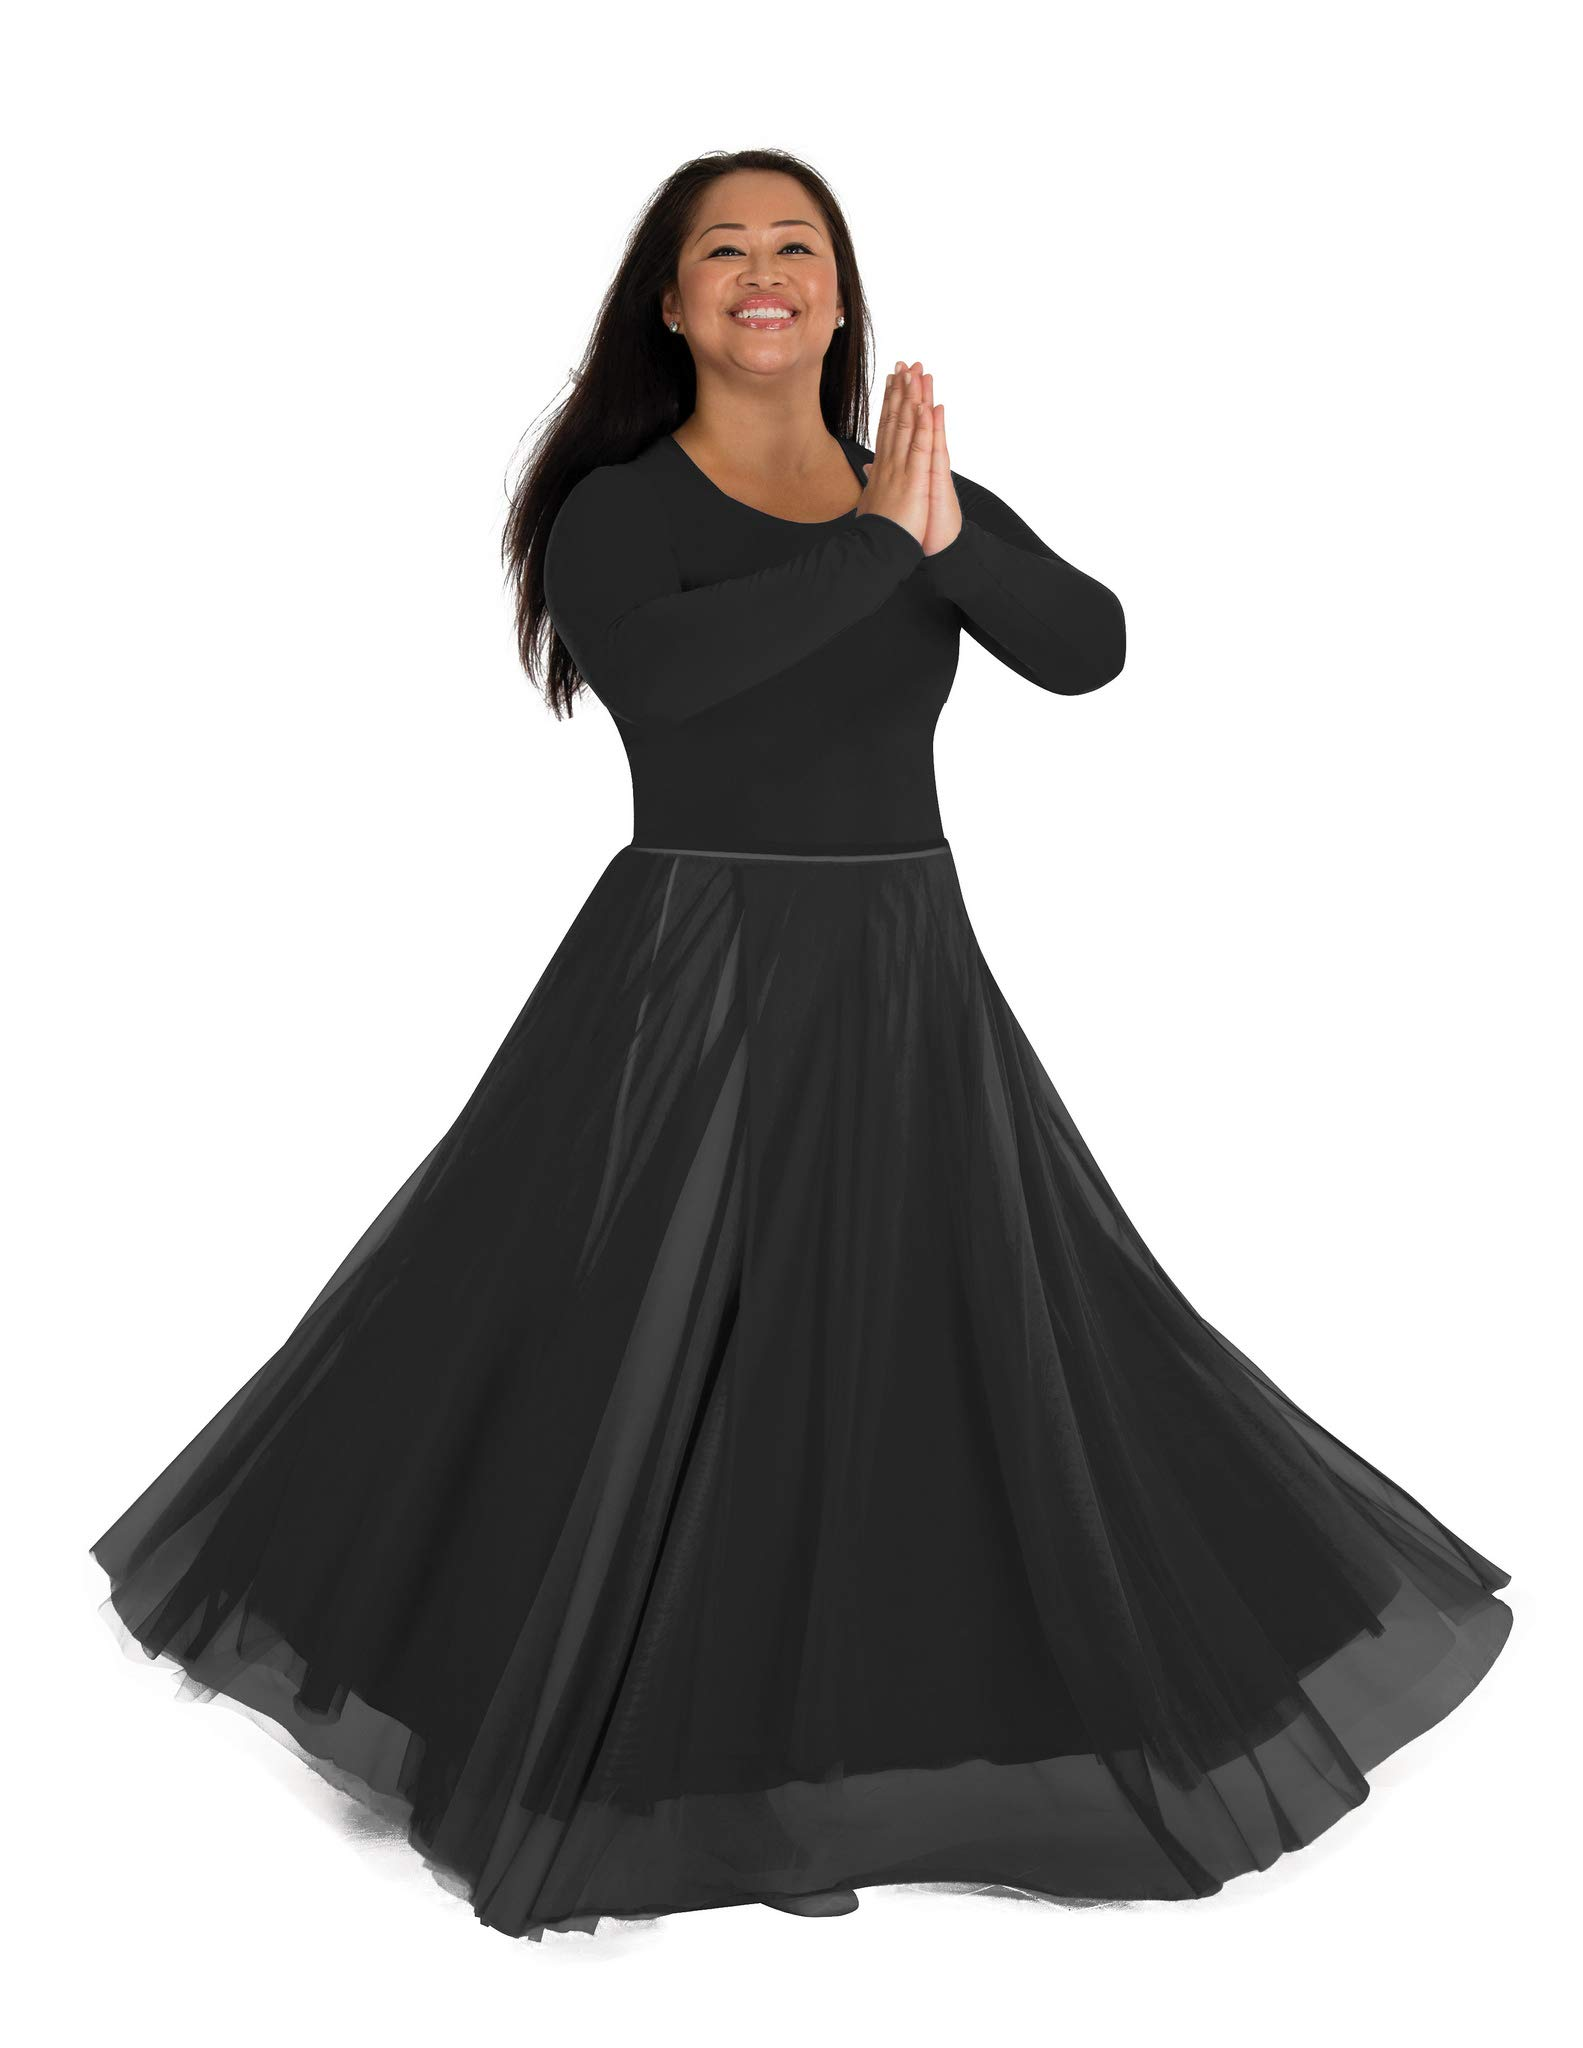 Body Wrappers Adult Long Full Chiffon Skirt (Black, S/M) - 538 by Body Wrappers